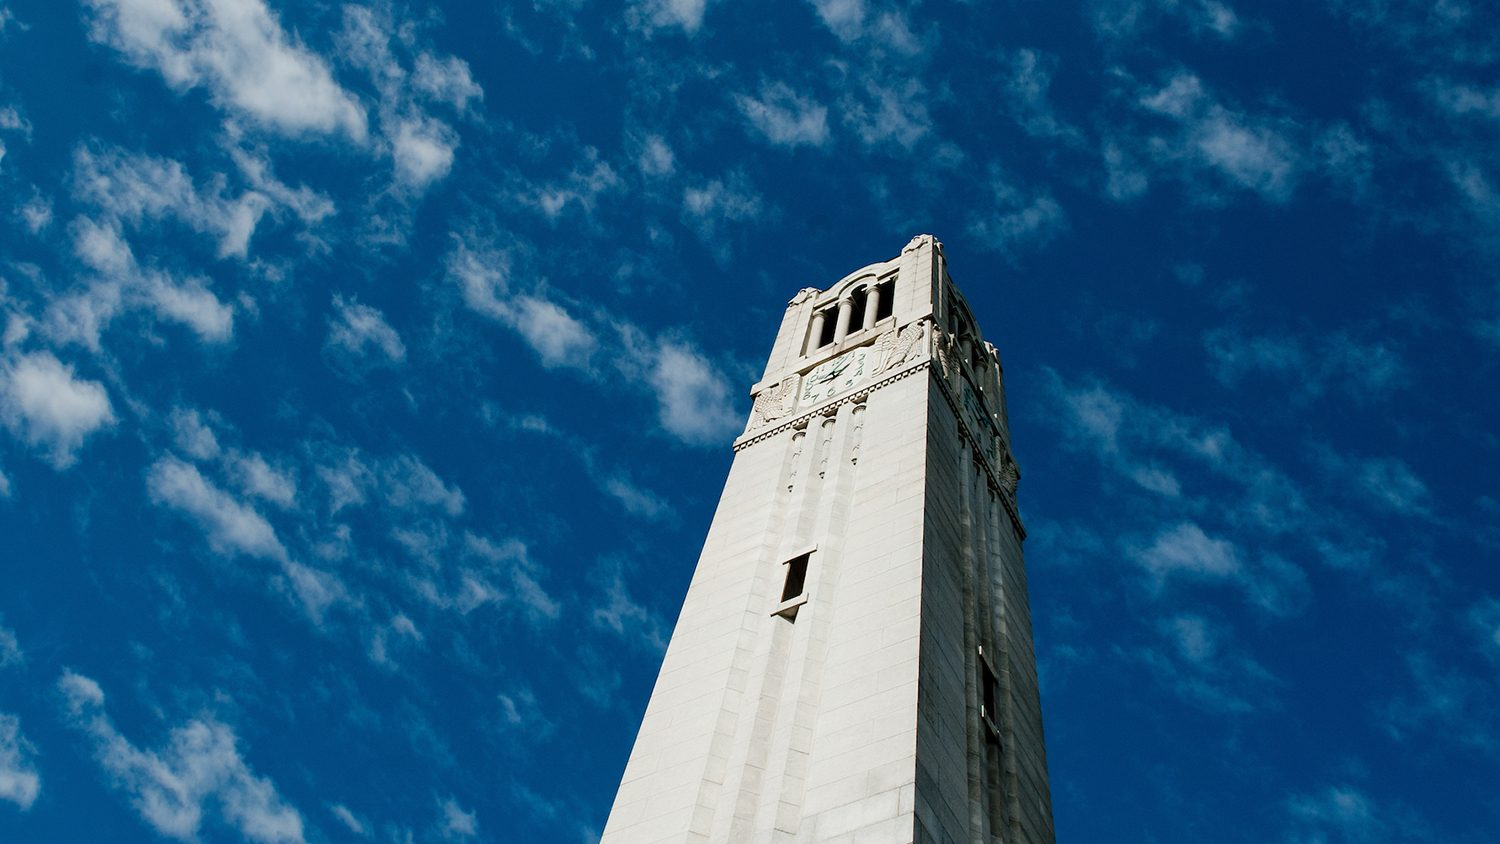 The Belltower on NC State's campus